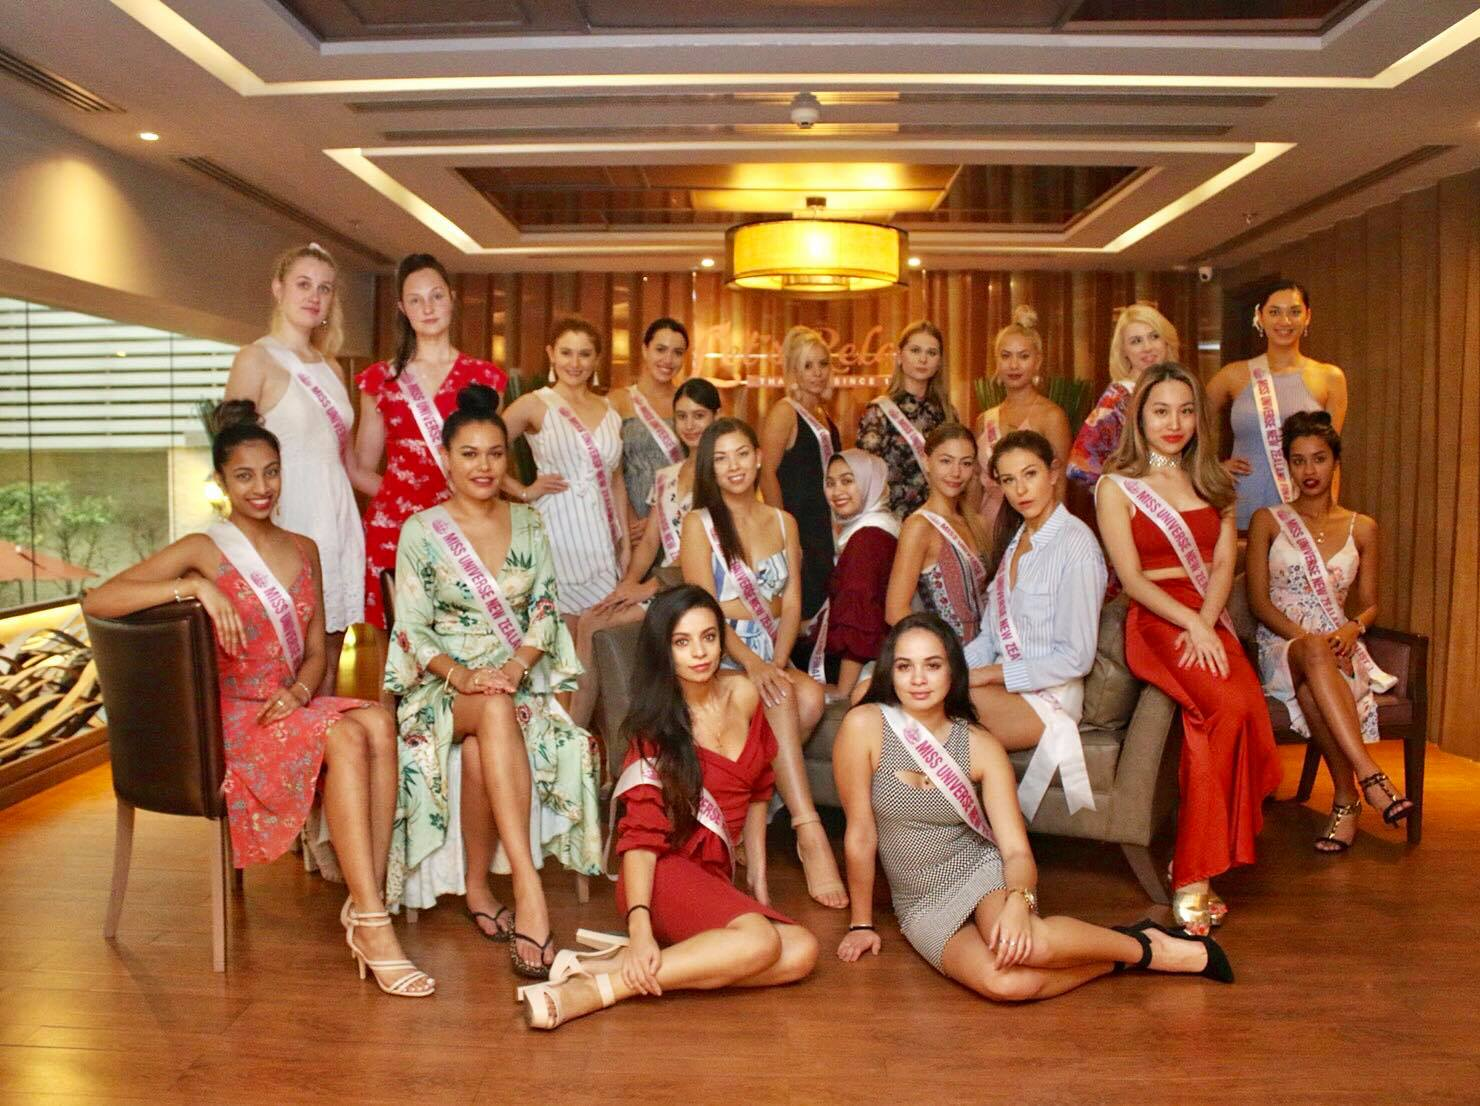 Let's Relax Spa welcomed Miss Universe New Zealand Top 20 Finalists